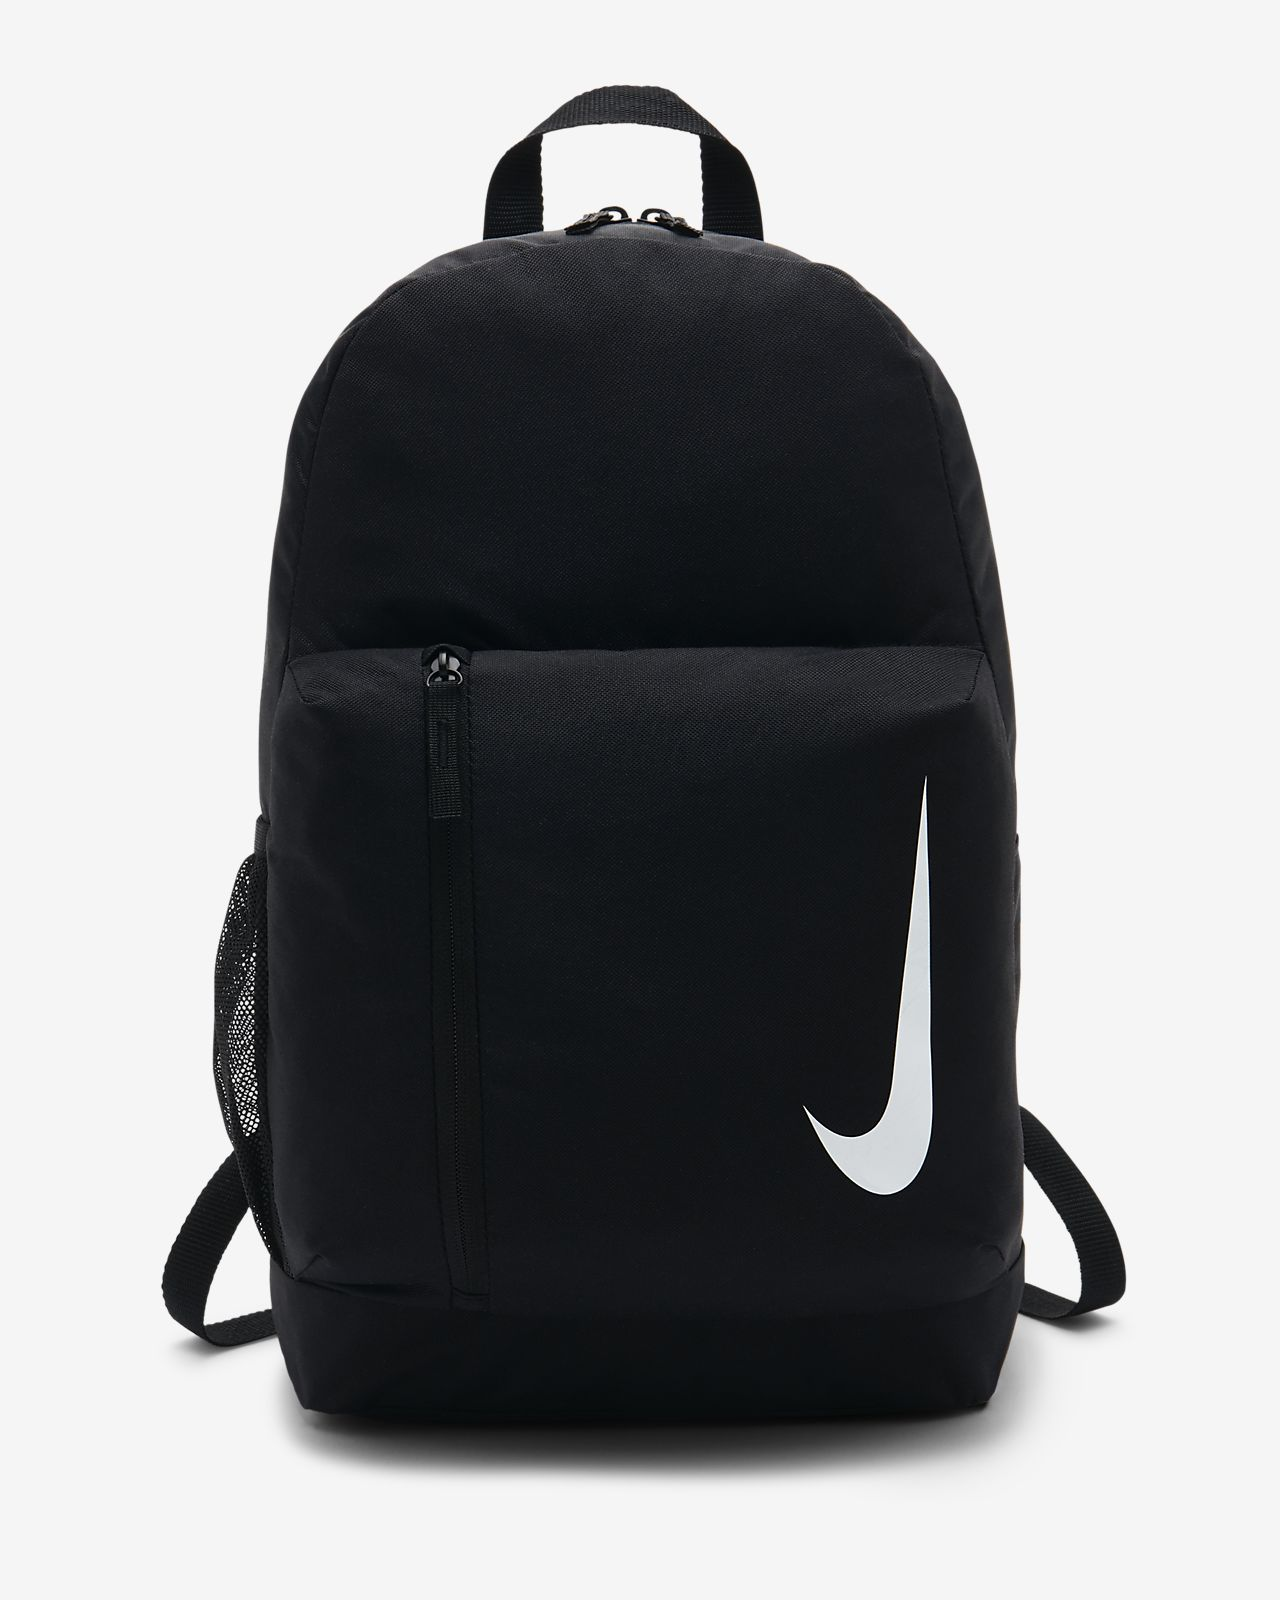 nike backpack mesh black Depop